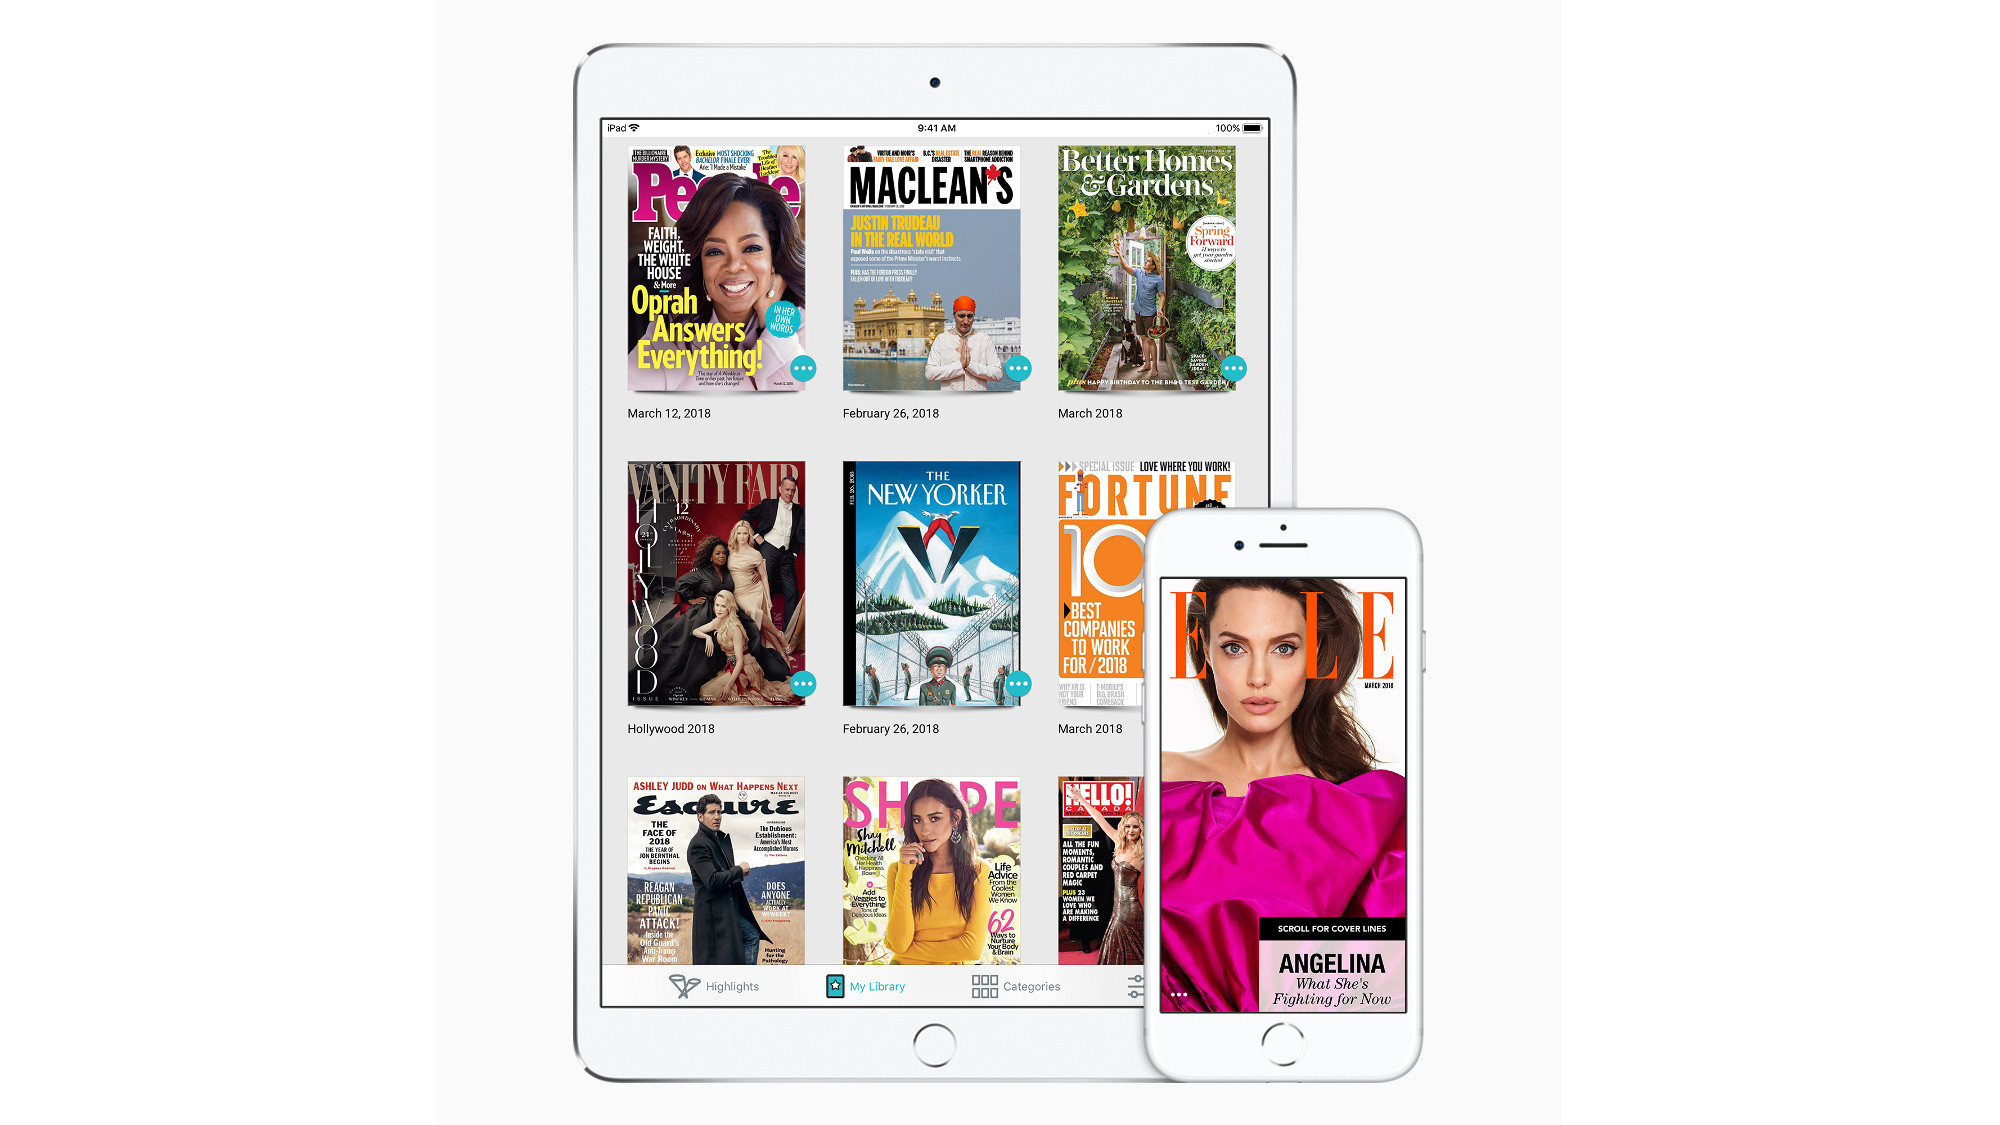 Apple has acquired digital magazine service Texture